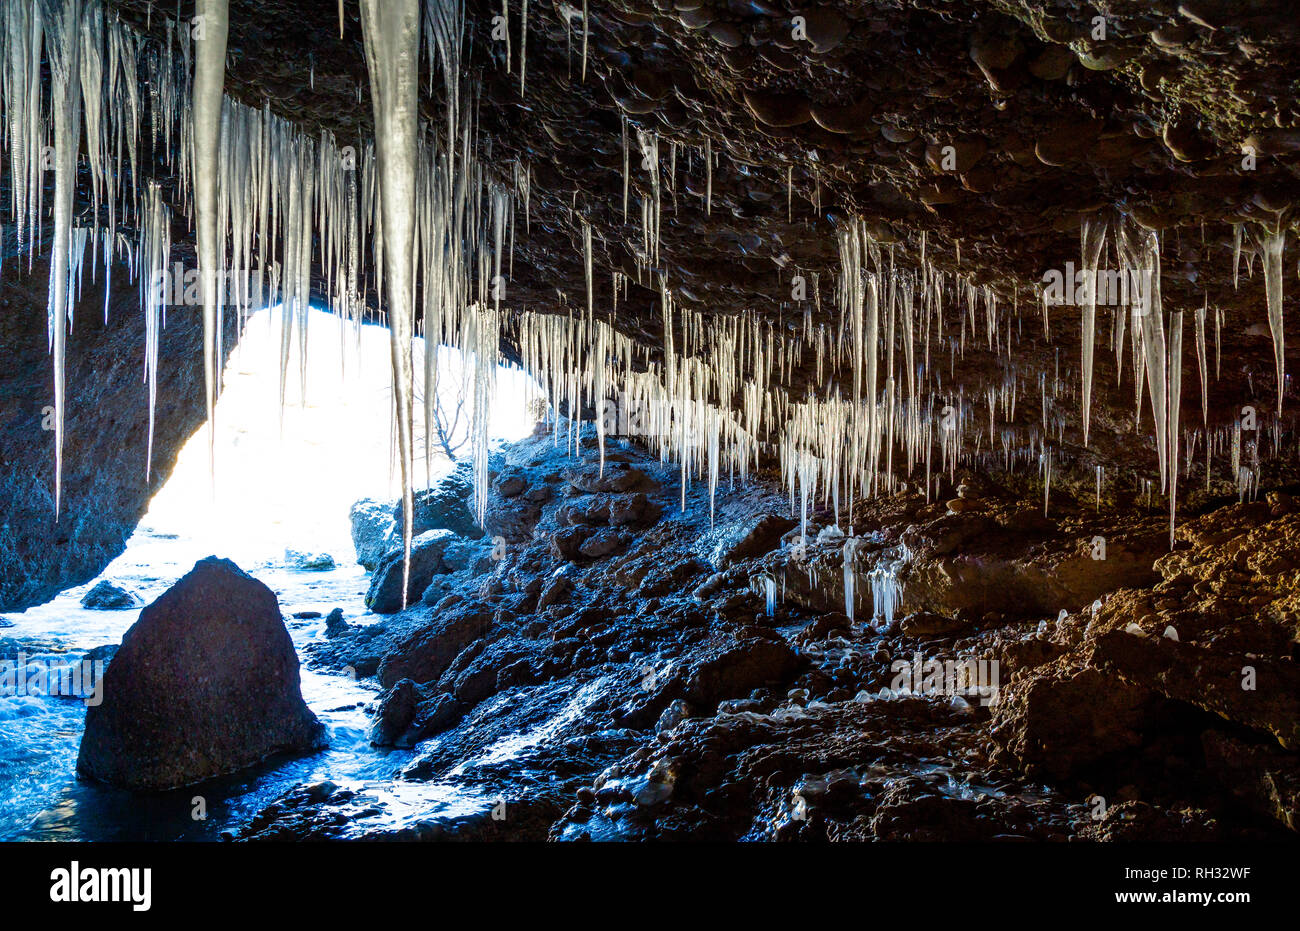 Panorama of the Cave with ice stalactites. - Stock Image